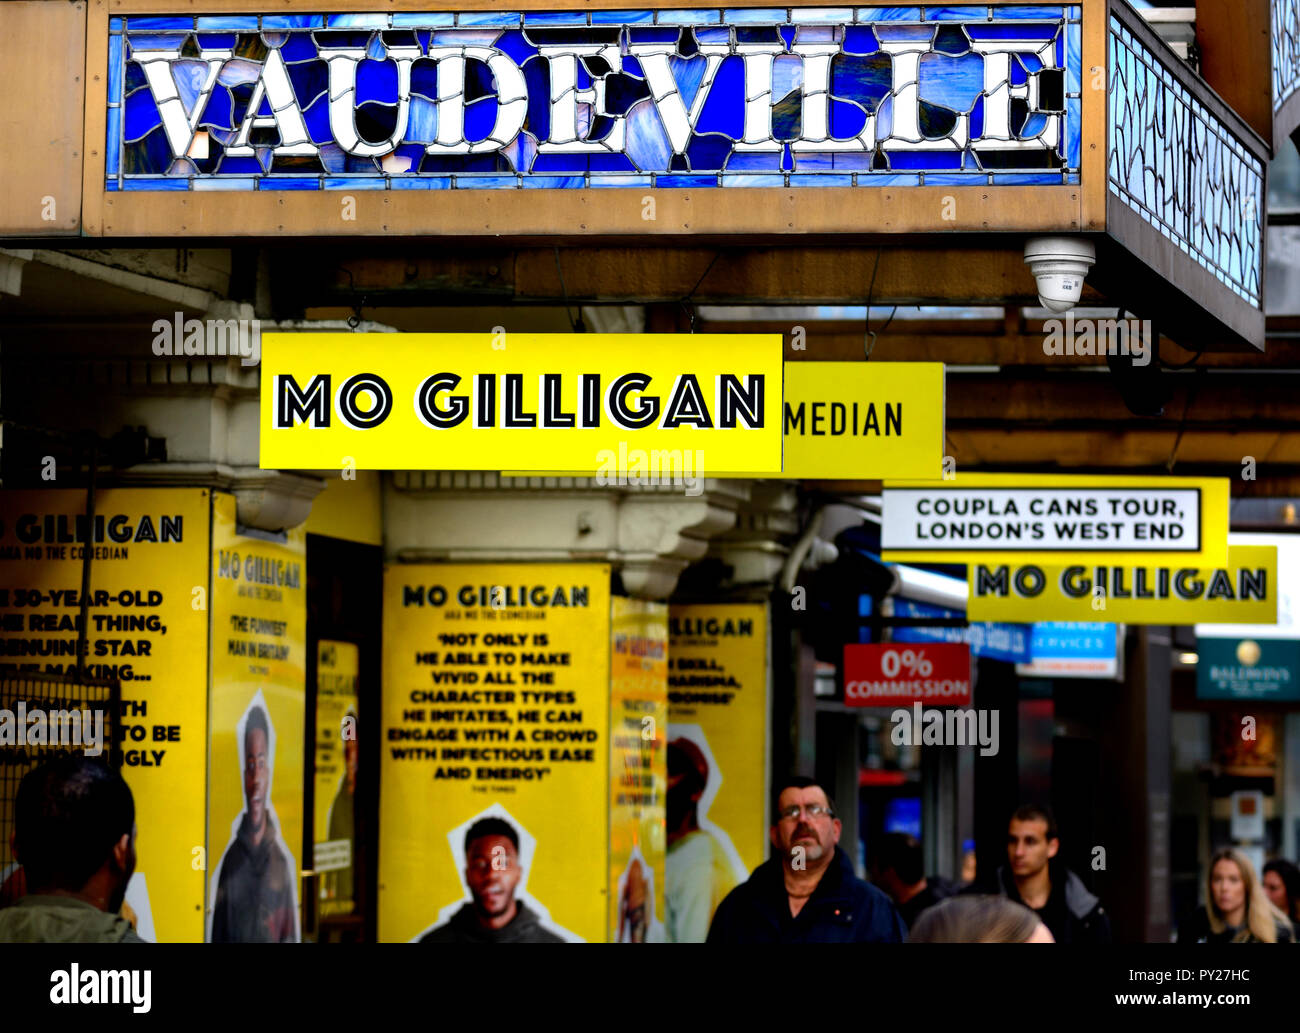 Mo Gilligan (comedian) at the Vaudeville Theatre, the Strand, London, England, UK. October 2018 - Stock Image